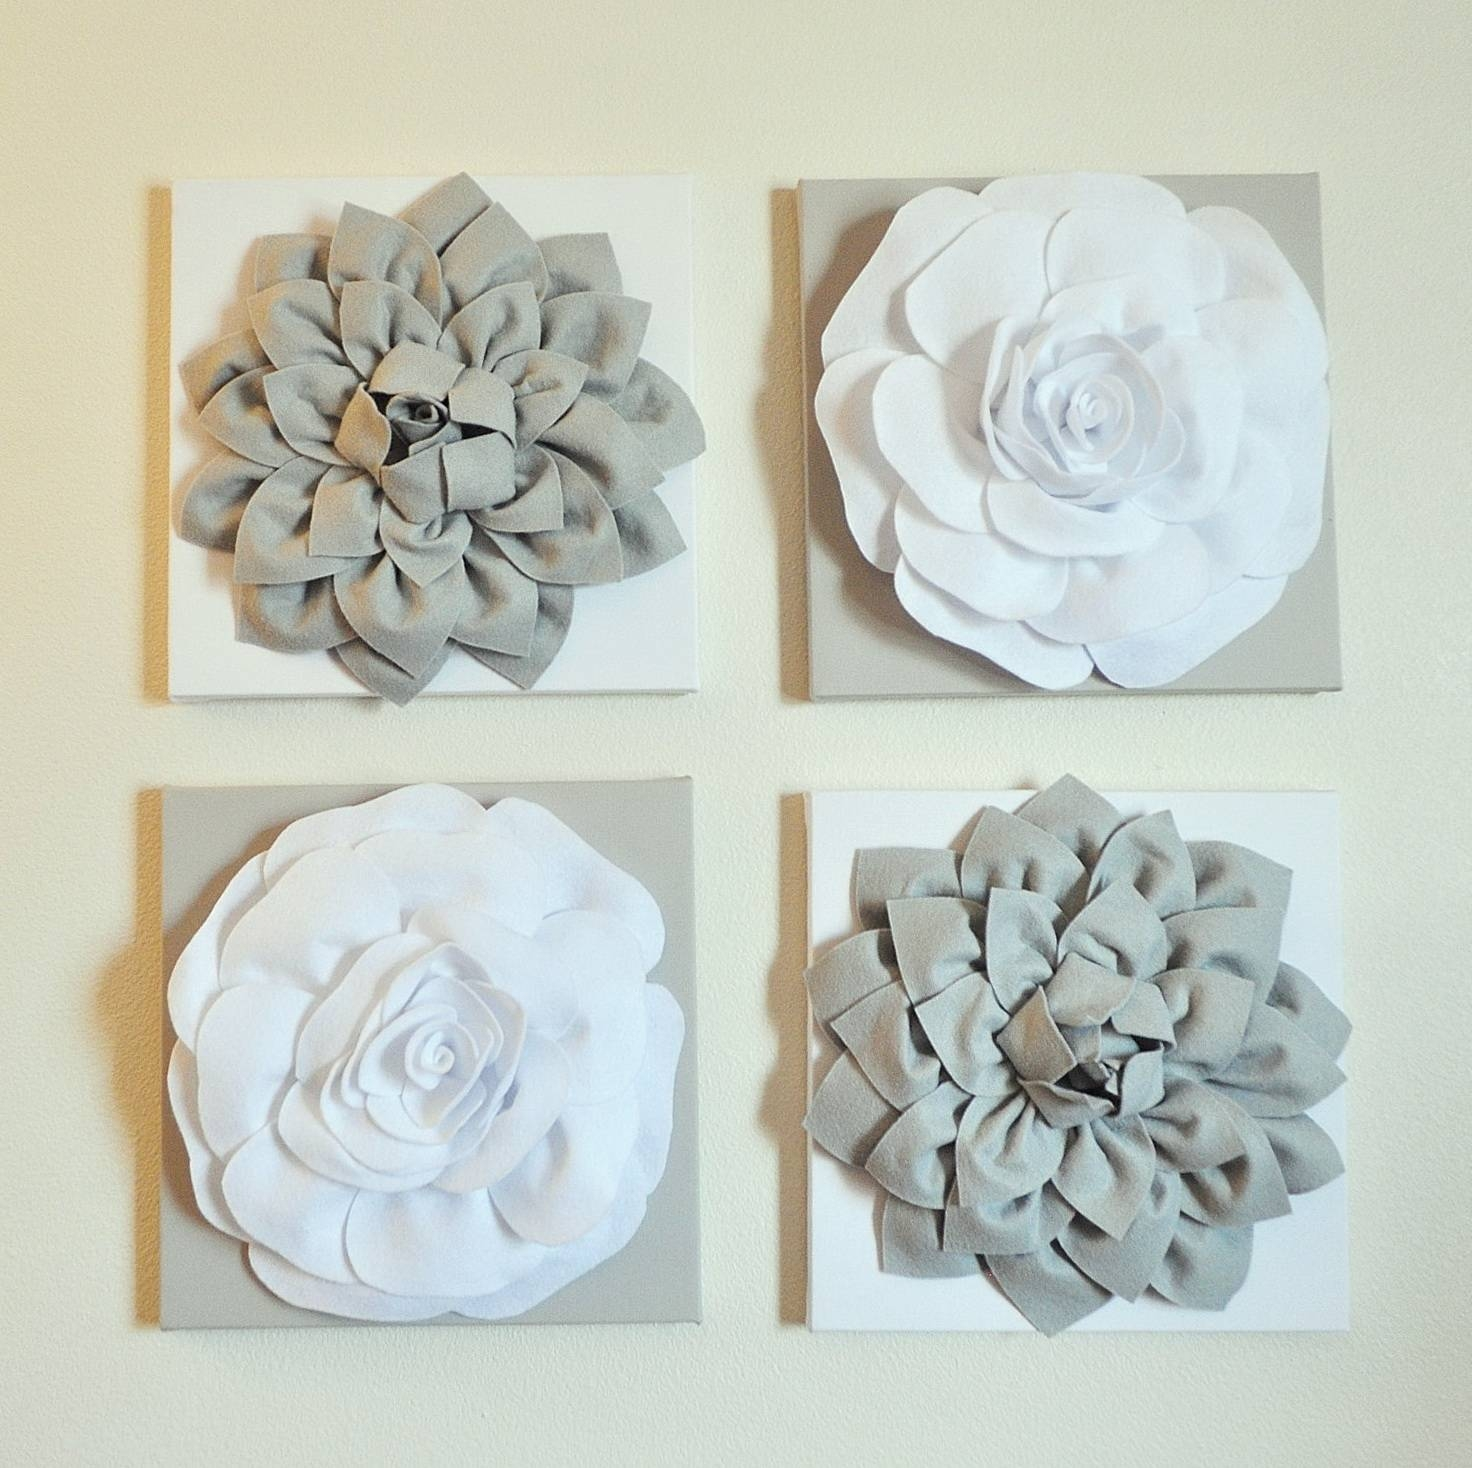 White Metal Flower Wall Art | Home Design Ideas Intended For 2017 White Metal Wall Art (View 2 of 20)